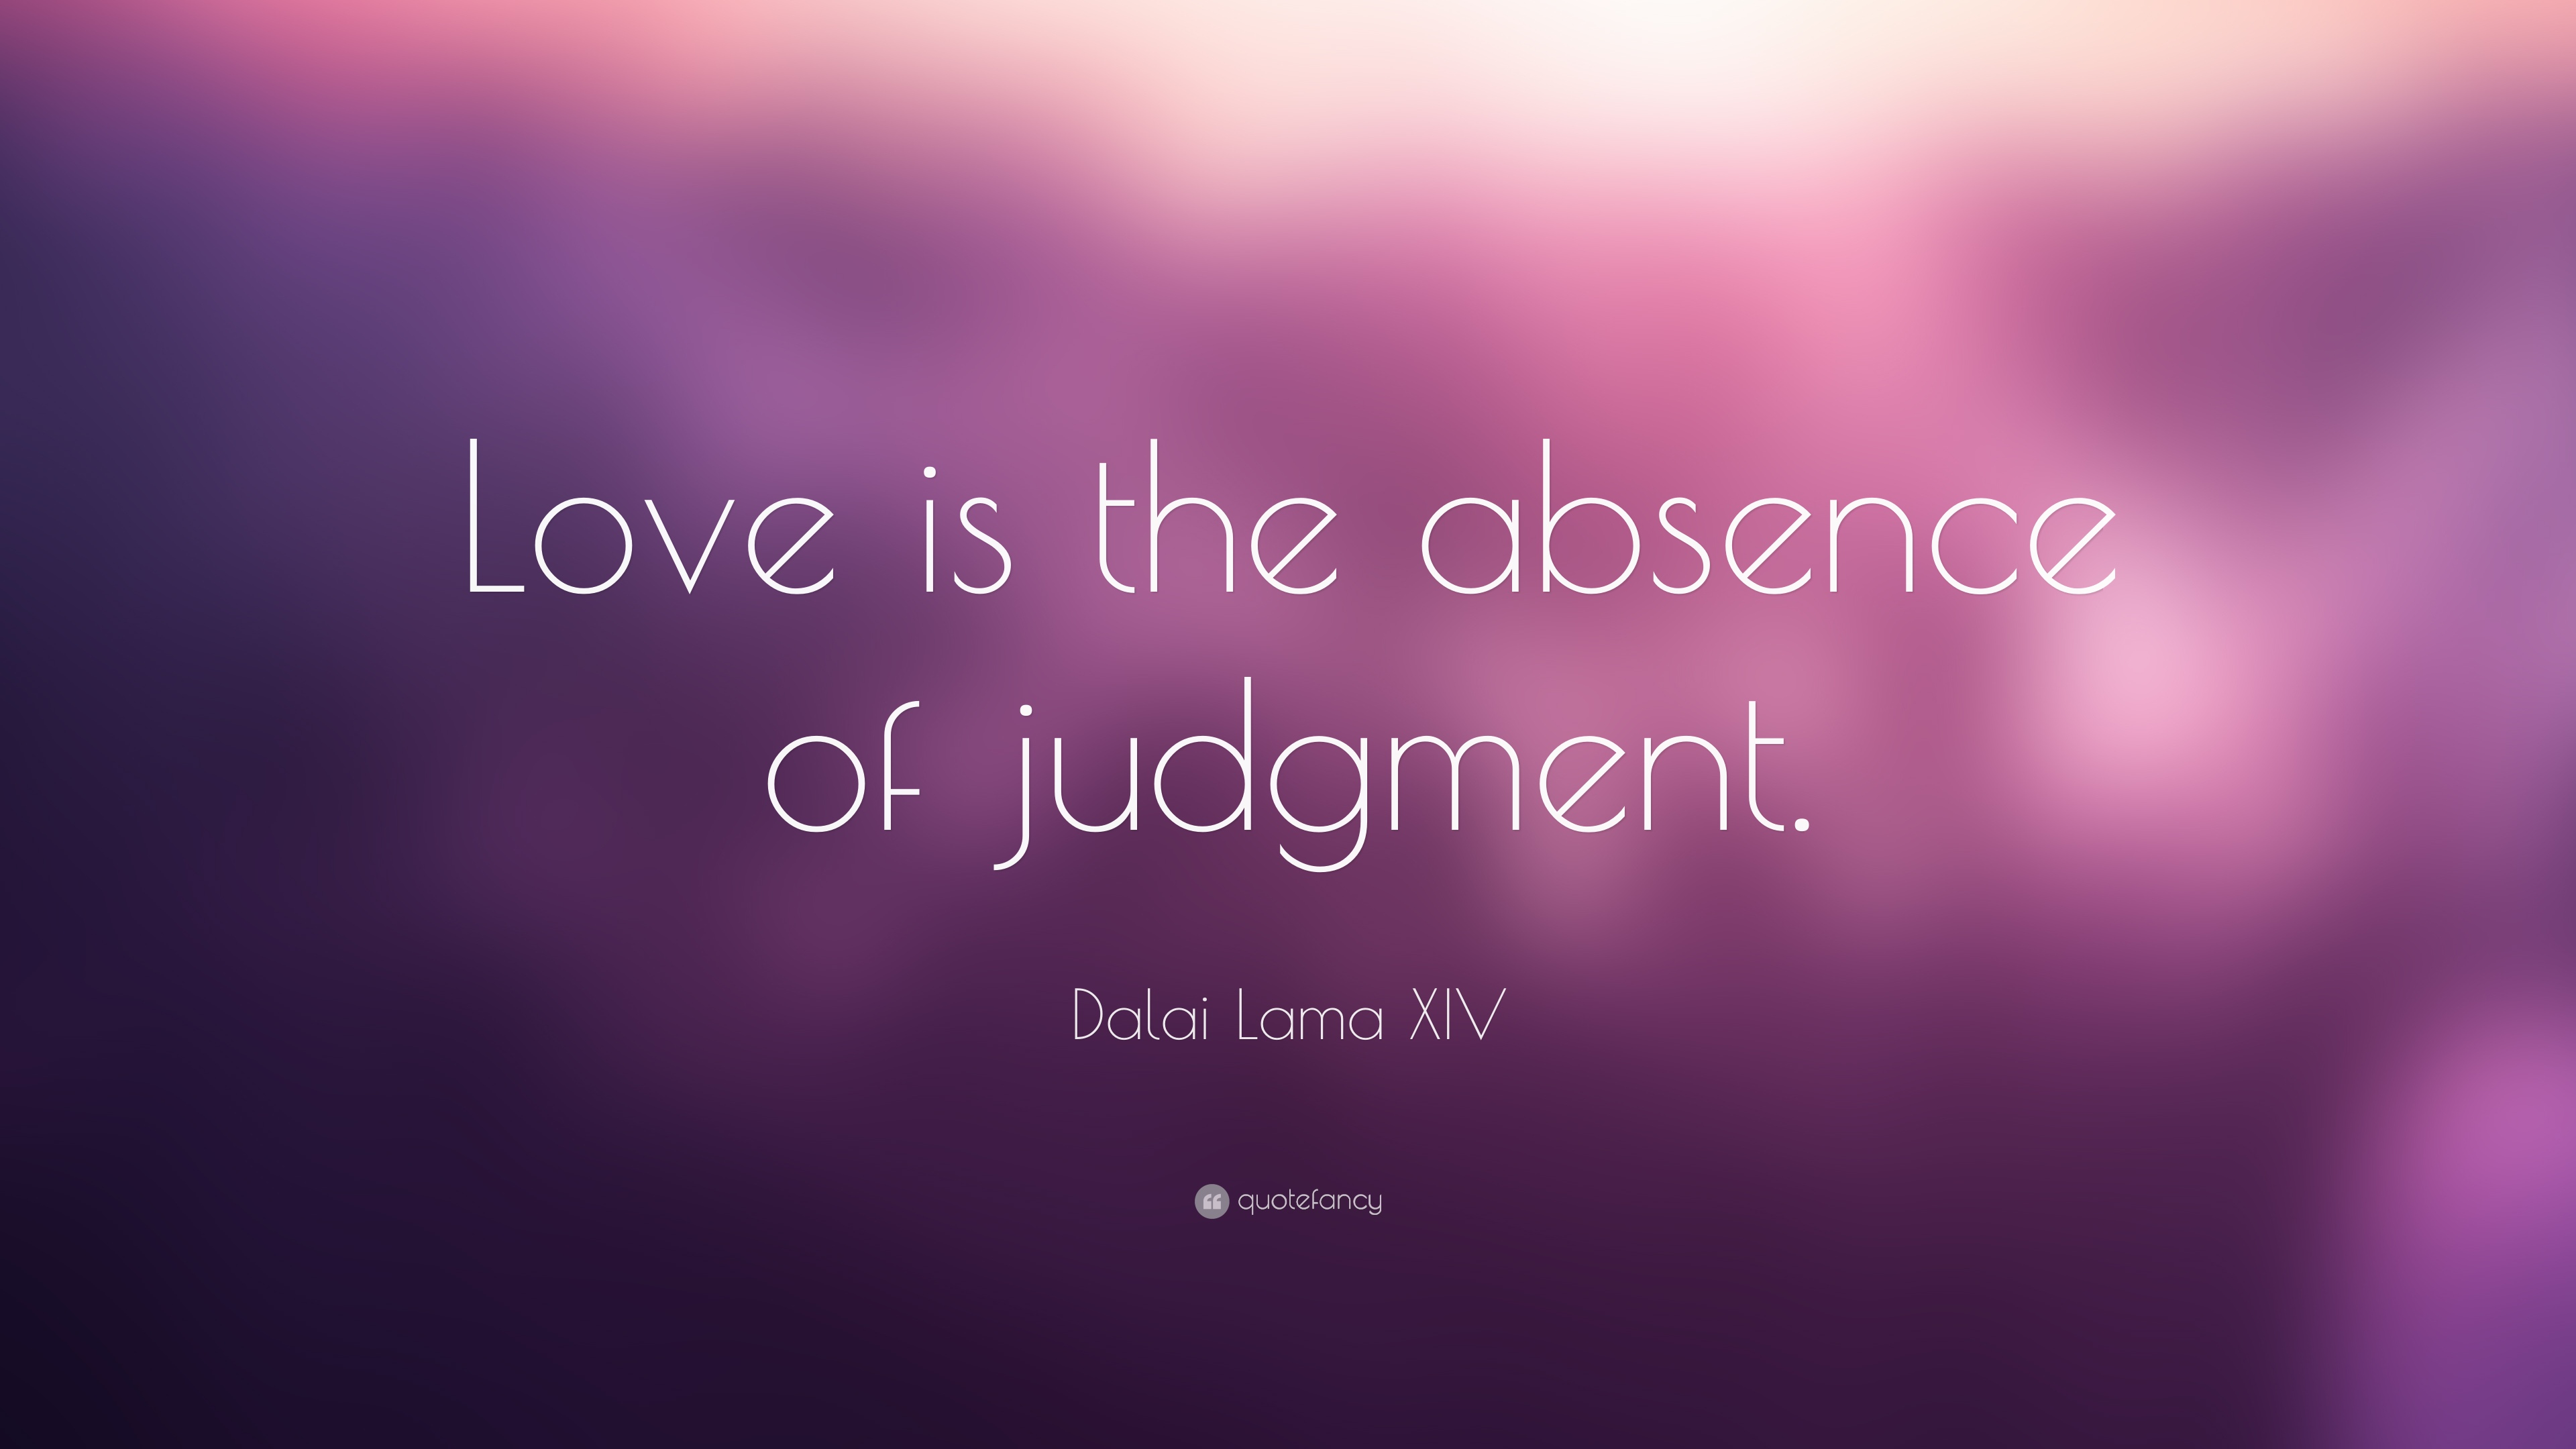 quotefancy.com/media/wallpaper/3840x2160/2602-Dalai-Lama-XIV-Quote-Love-is-the-absence-of-judgment.jpg